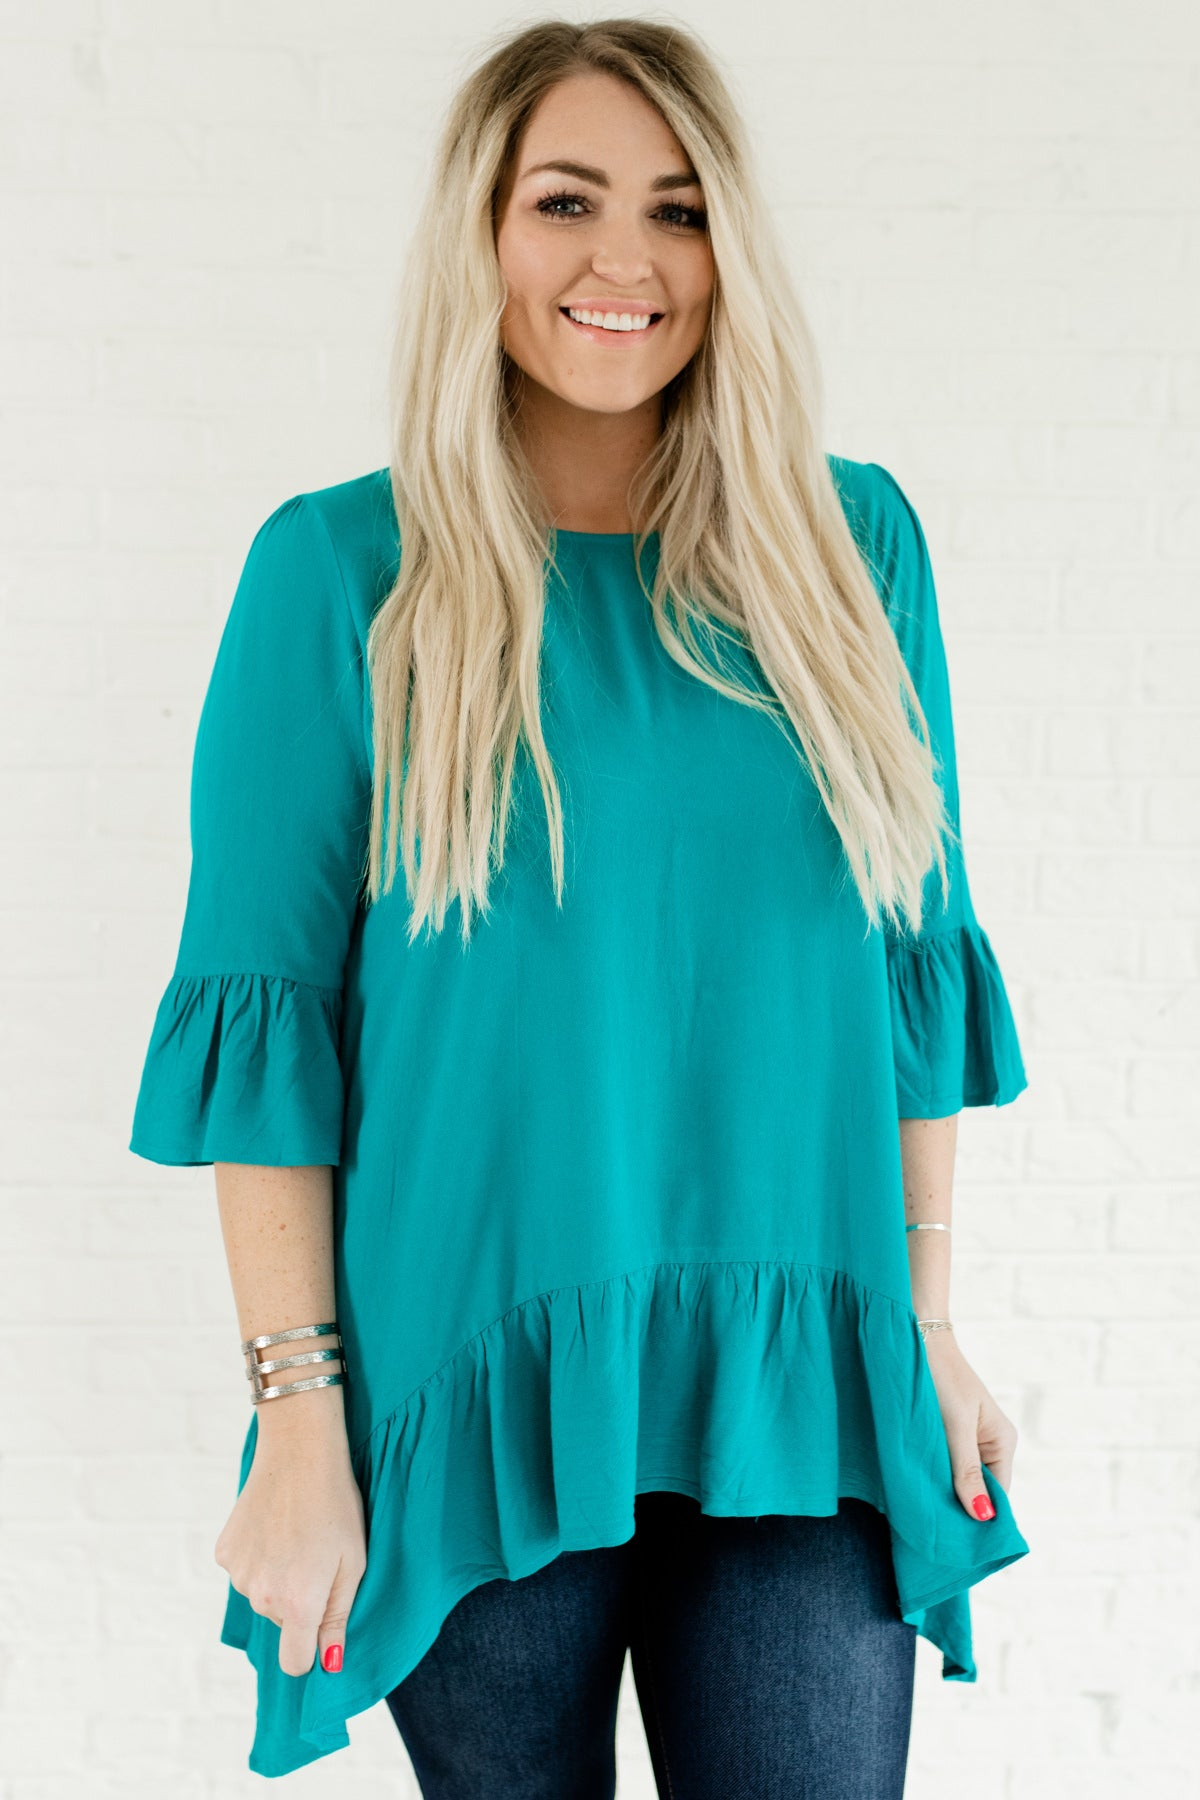 Teal Plus Size Boutique Ruffle Tunic Tops Affordable Online Boutique